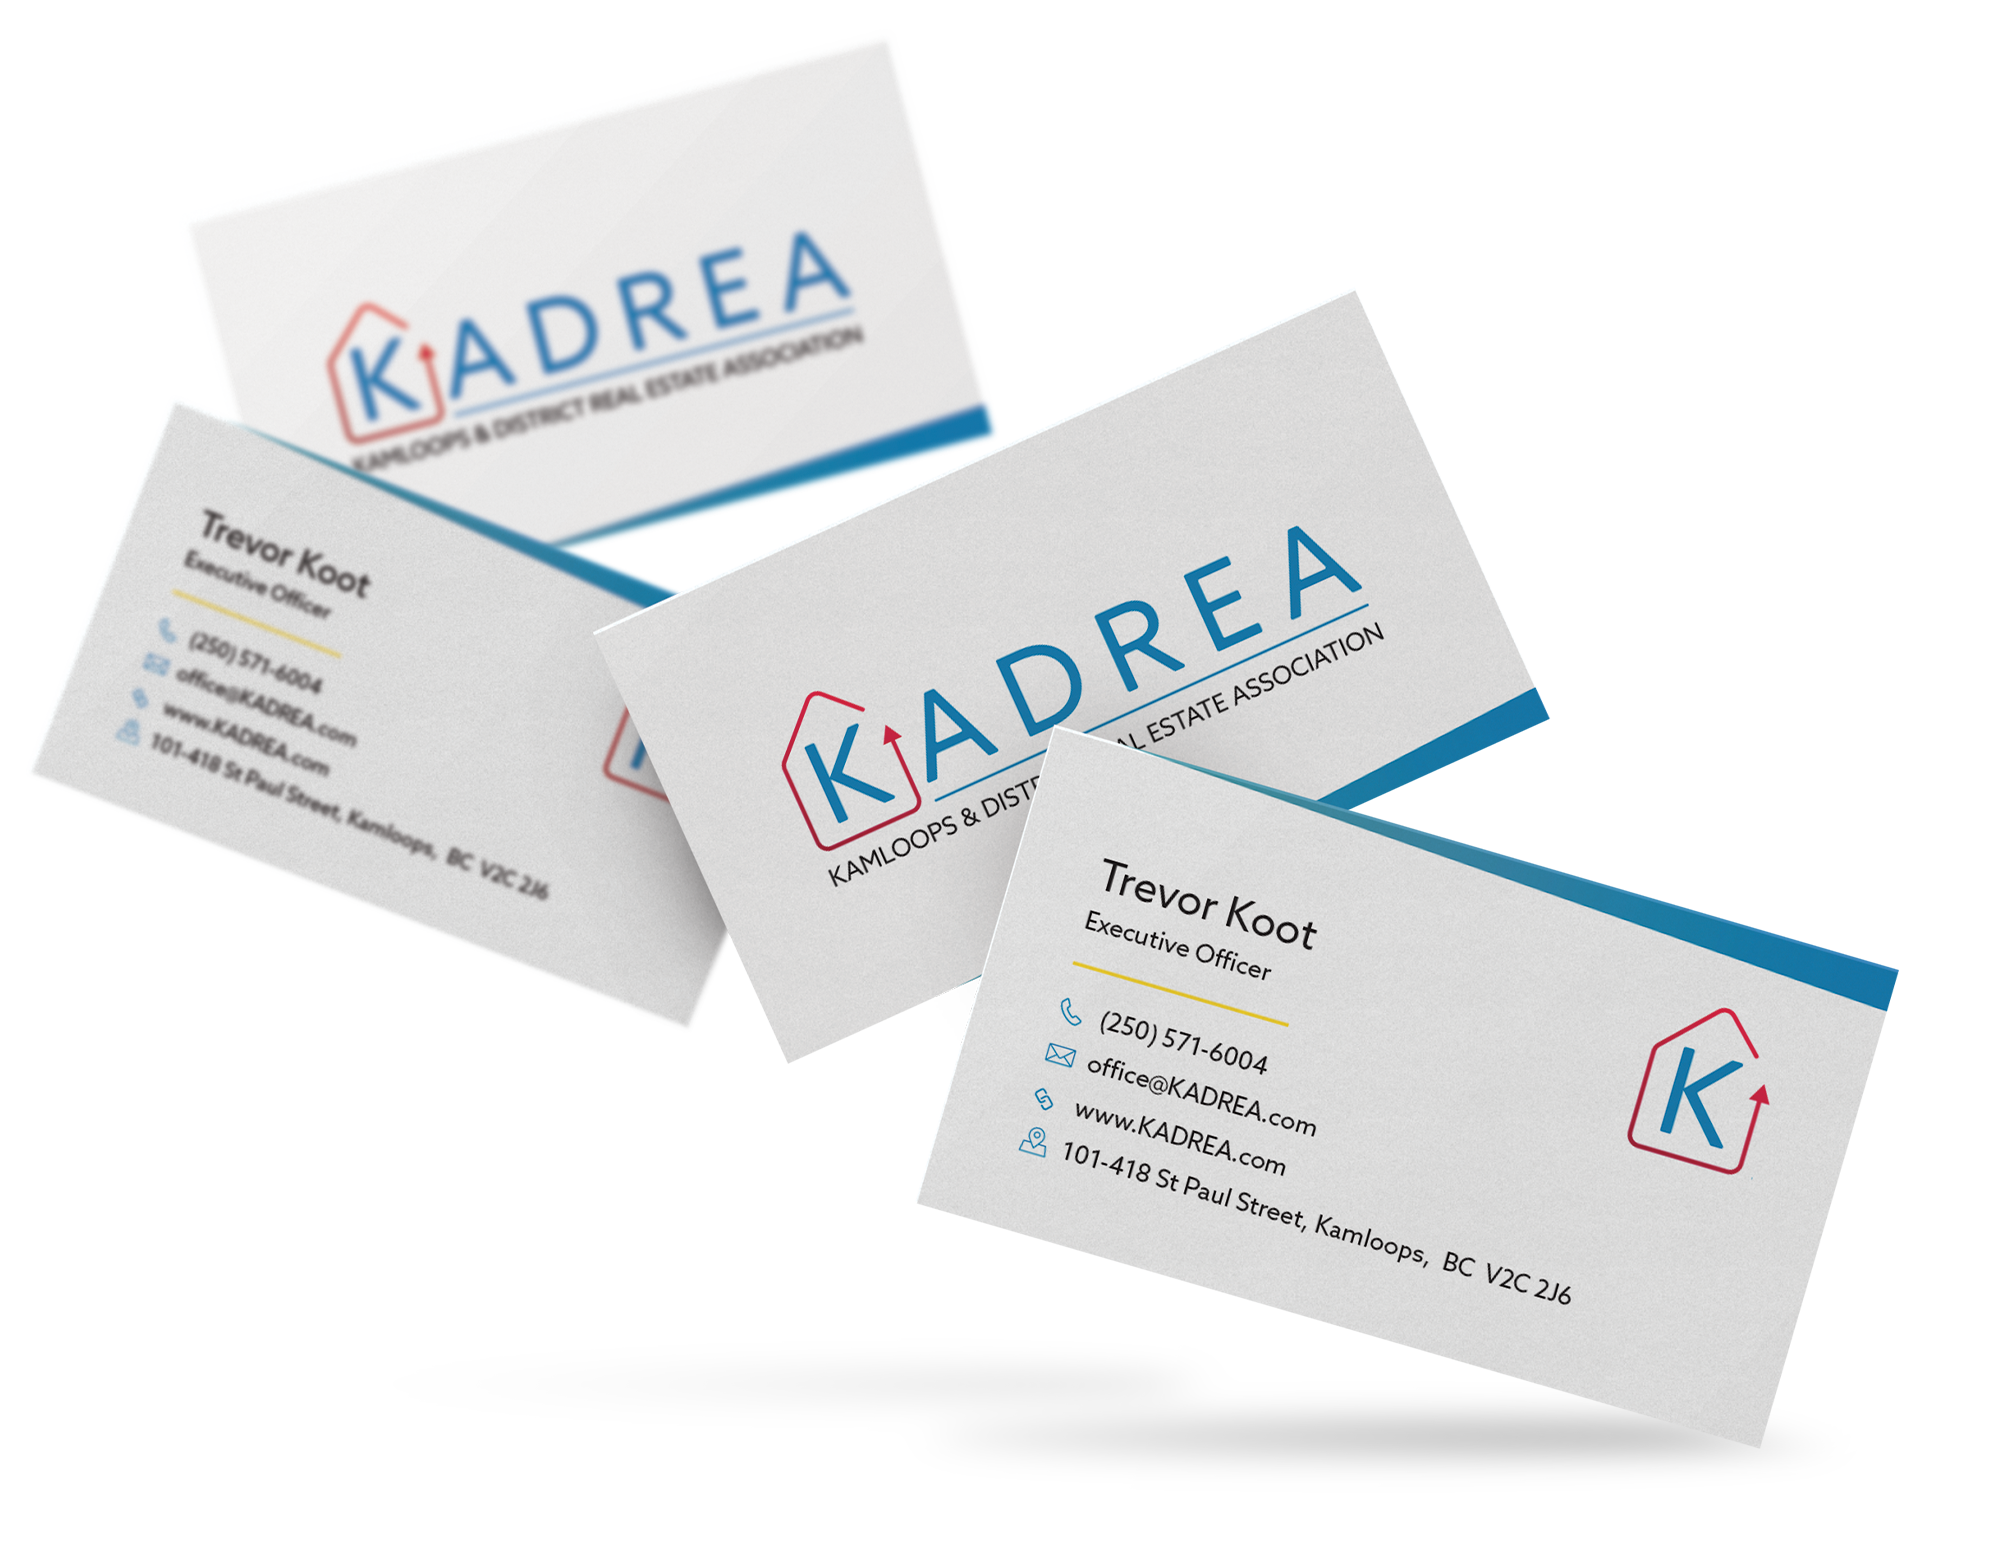 KADREA's new business card design.